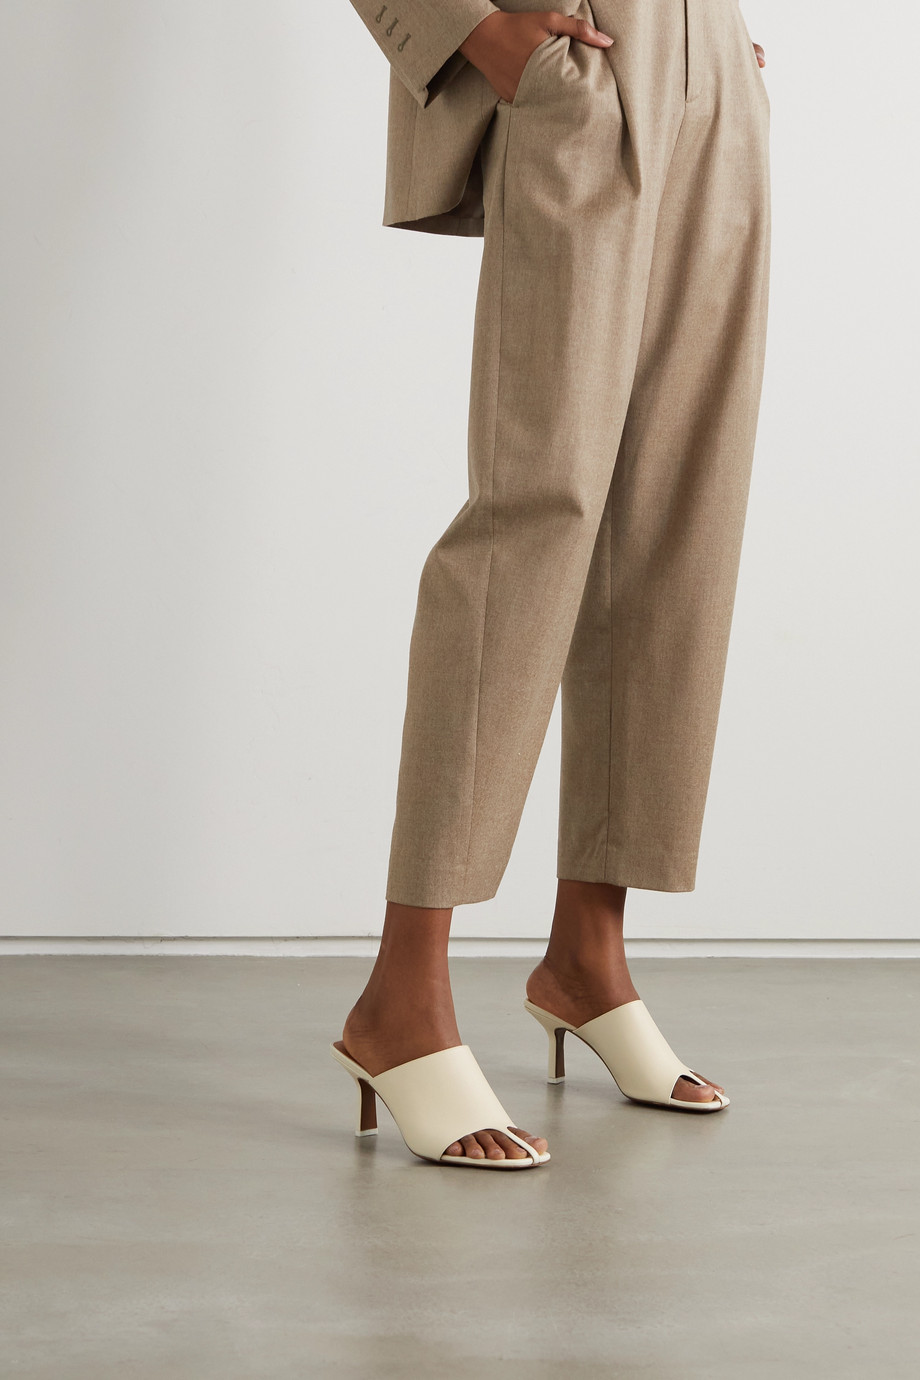 NEOUS + NET SUSTAIN Jumel leather mules